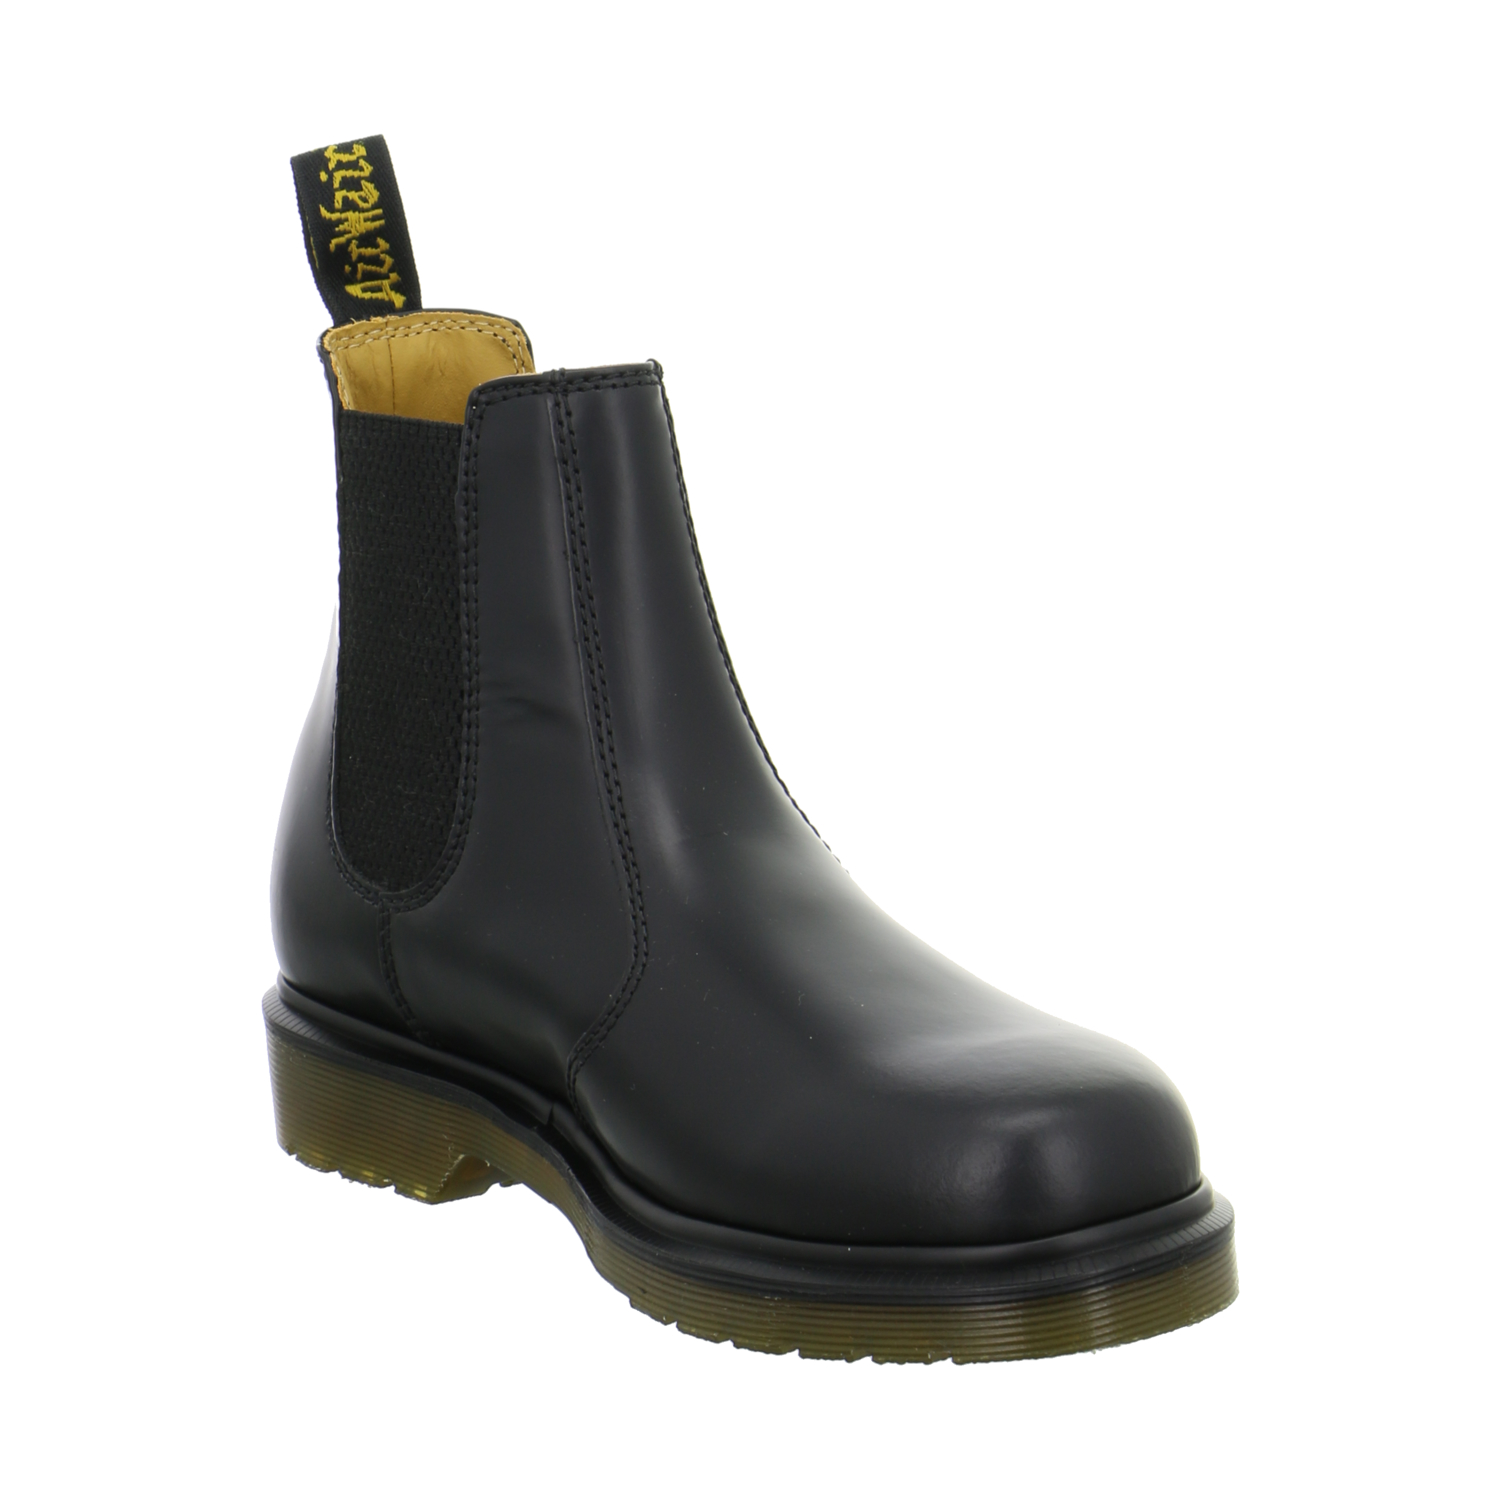 dr martens doc 2976 chelsea boot schwarz herren stiefel schuhe stiefelette ebay. Black Bedroom Furniture Sets. Home Design Ideas